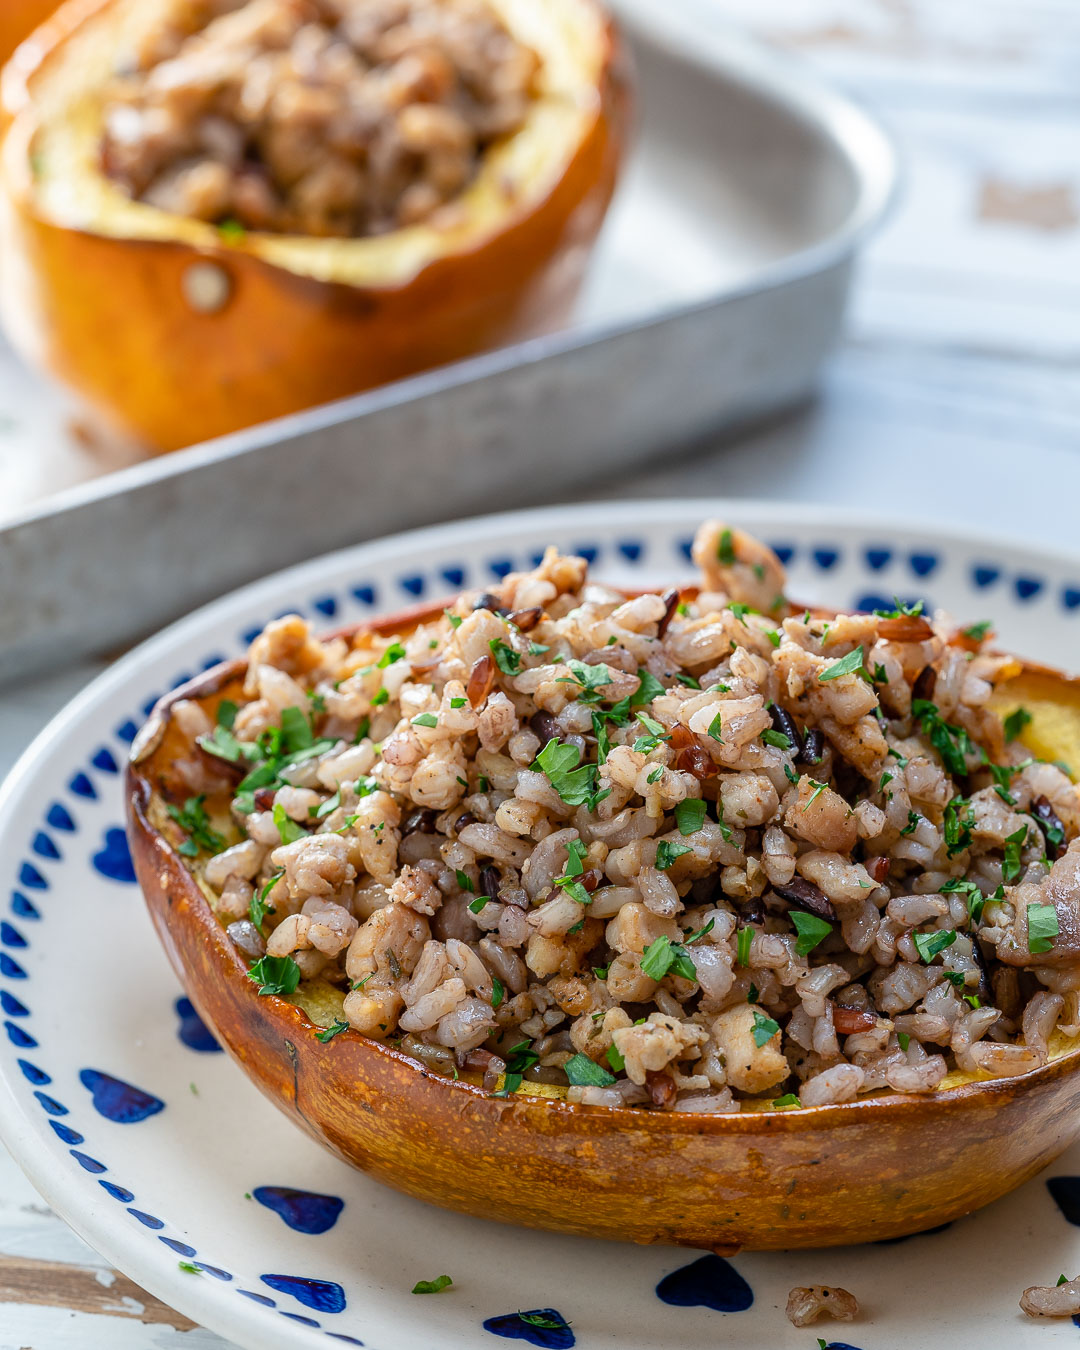 Turkey + Wild Rice Stuffed Squash For Cozy Warm Clean